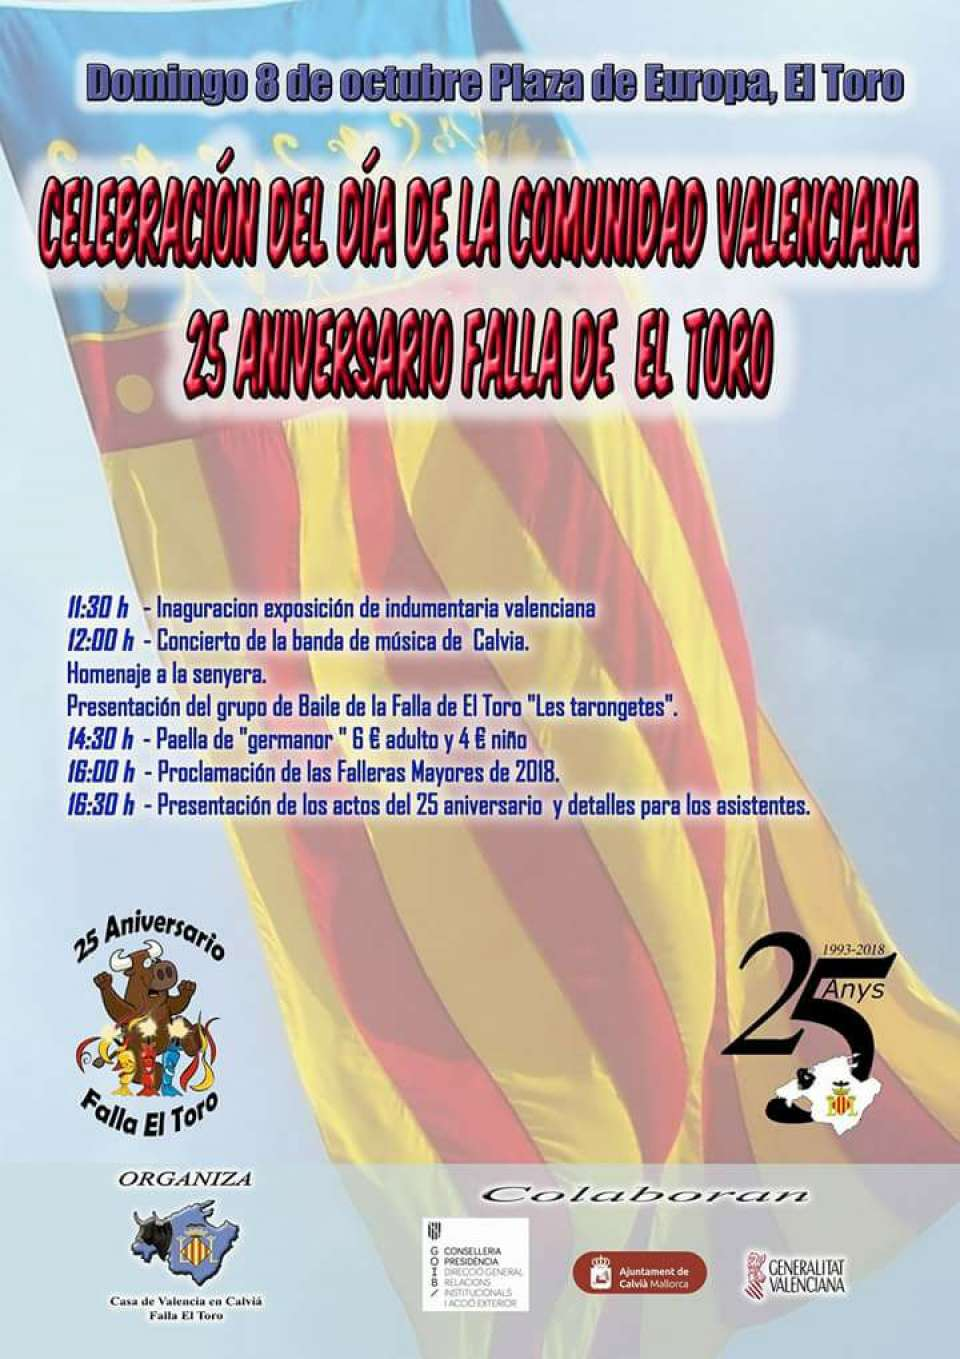 Day of the Valencian Community in Mallorca 1